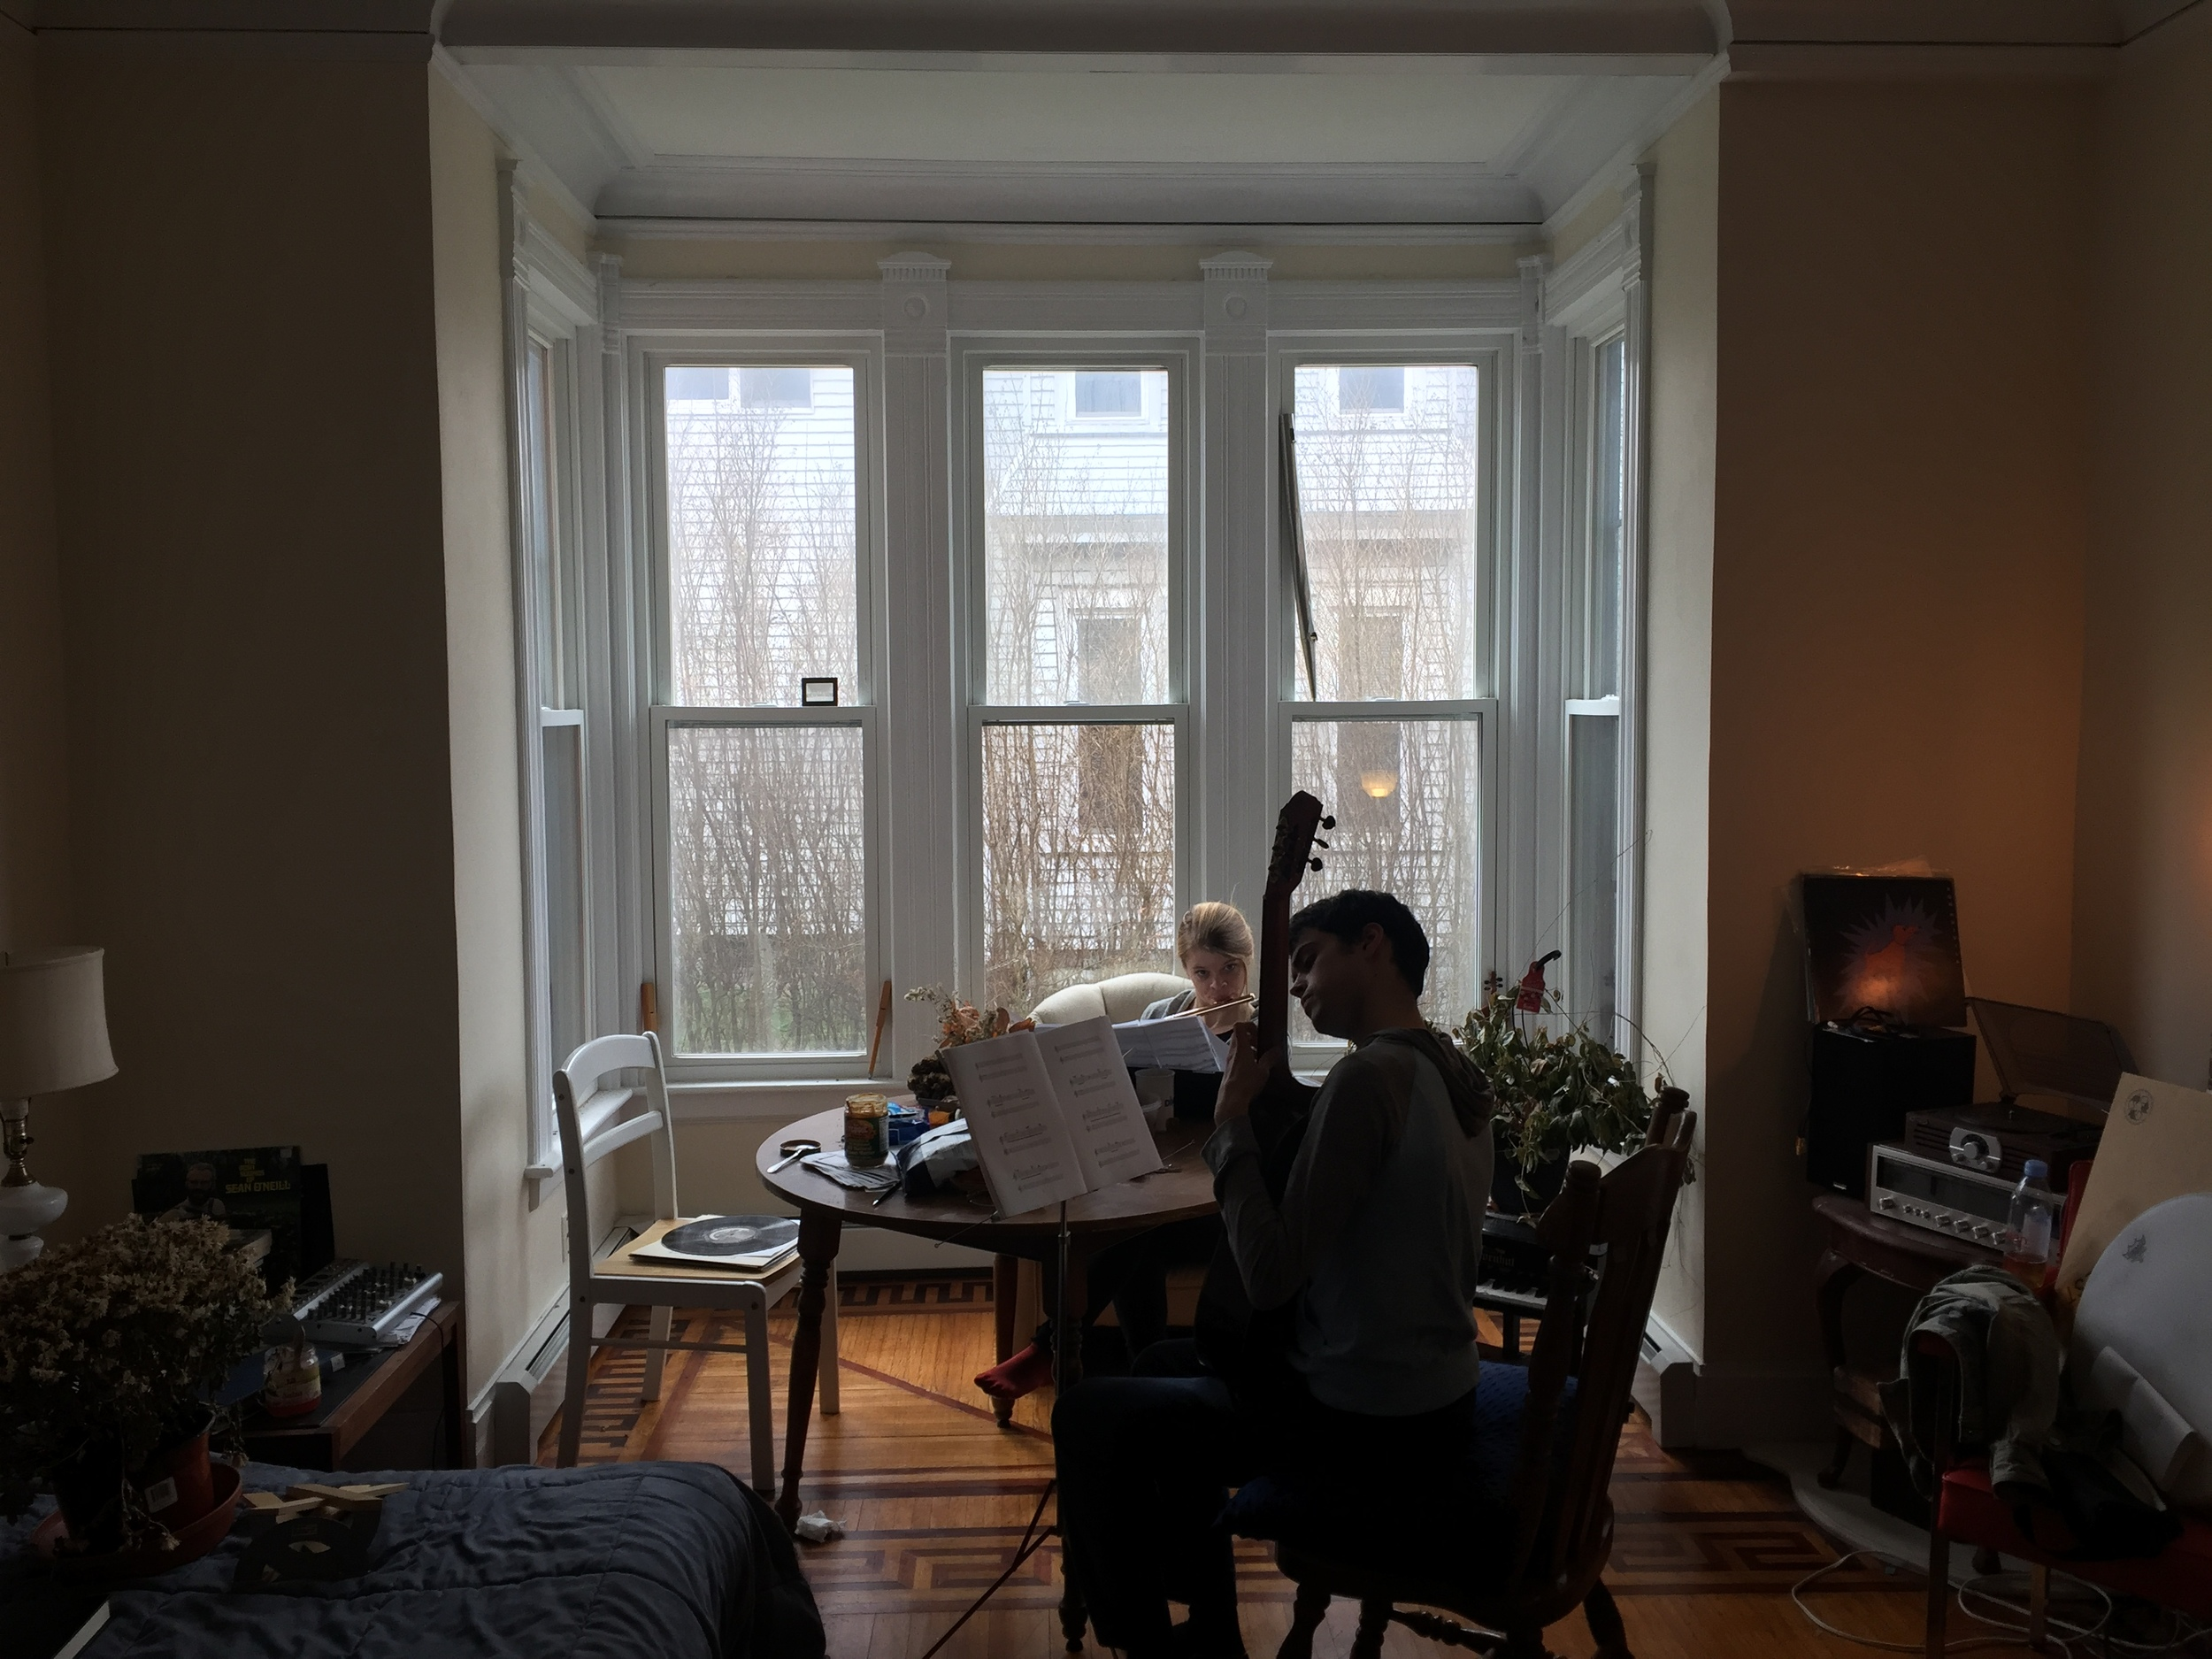 Kevin Dee and Laura Cocks rehearsing 'Guitar and Flute' in Middletown, CT April 1st 2016